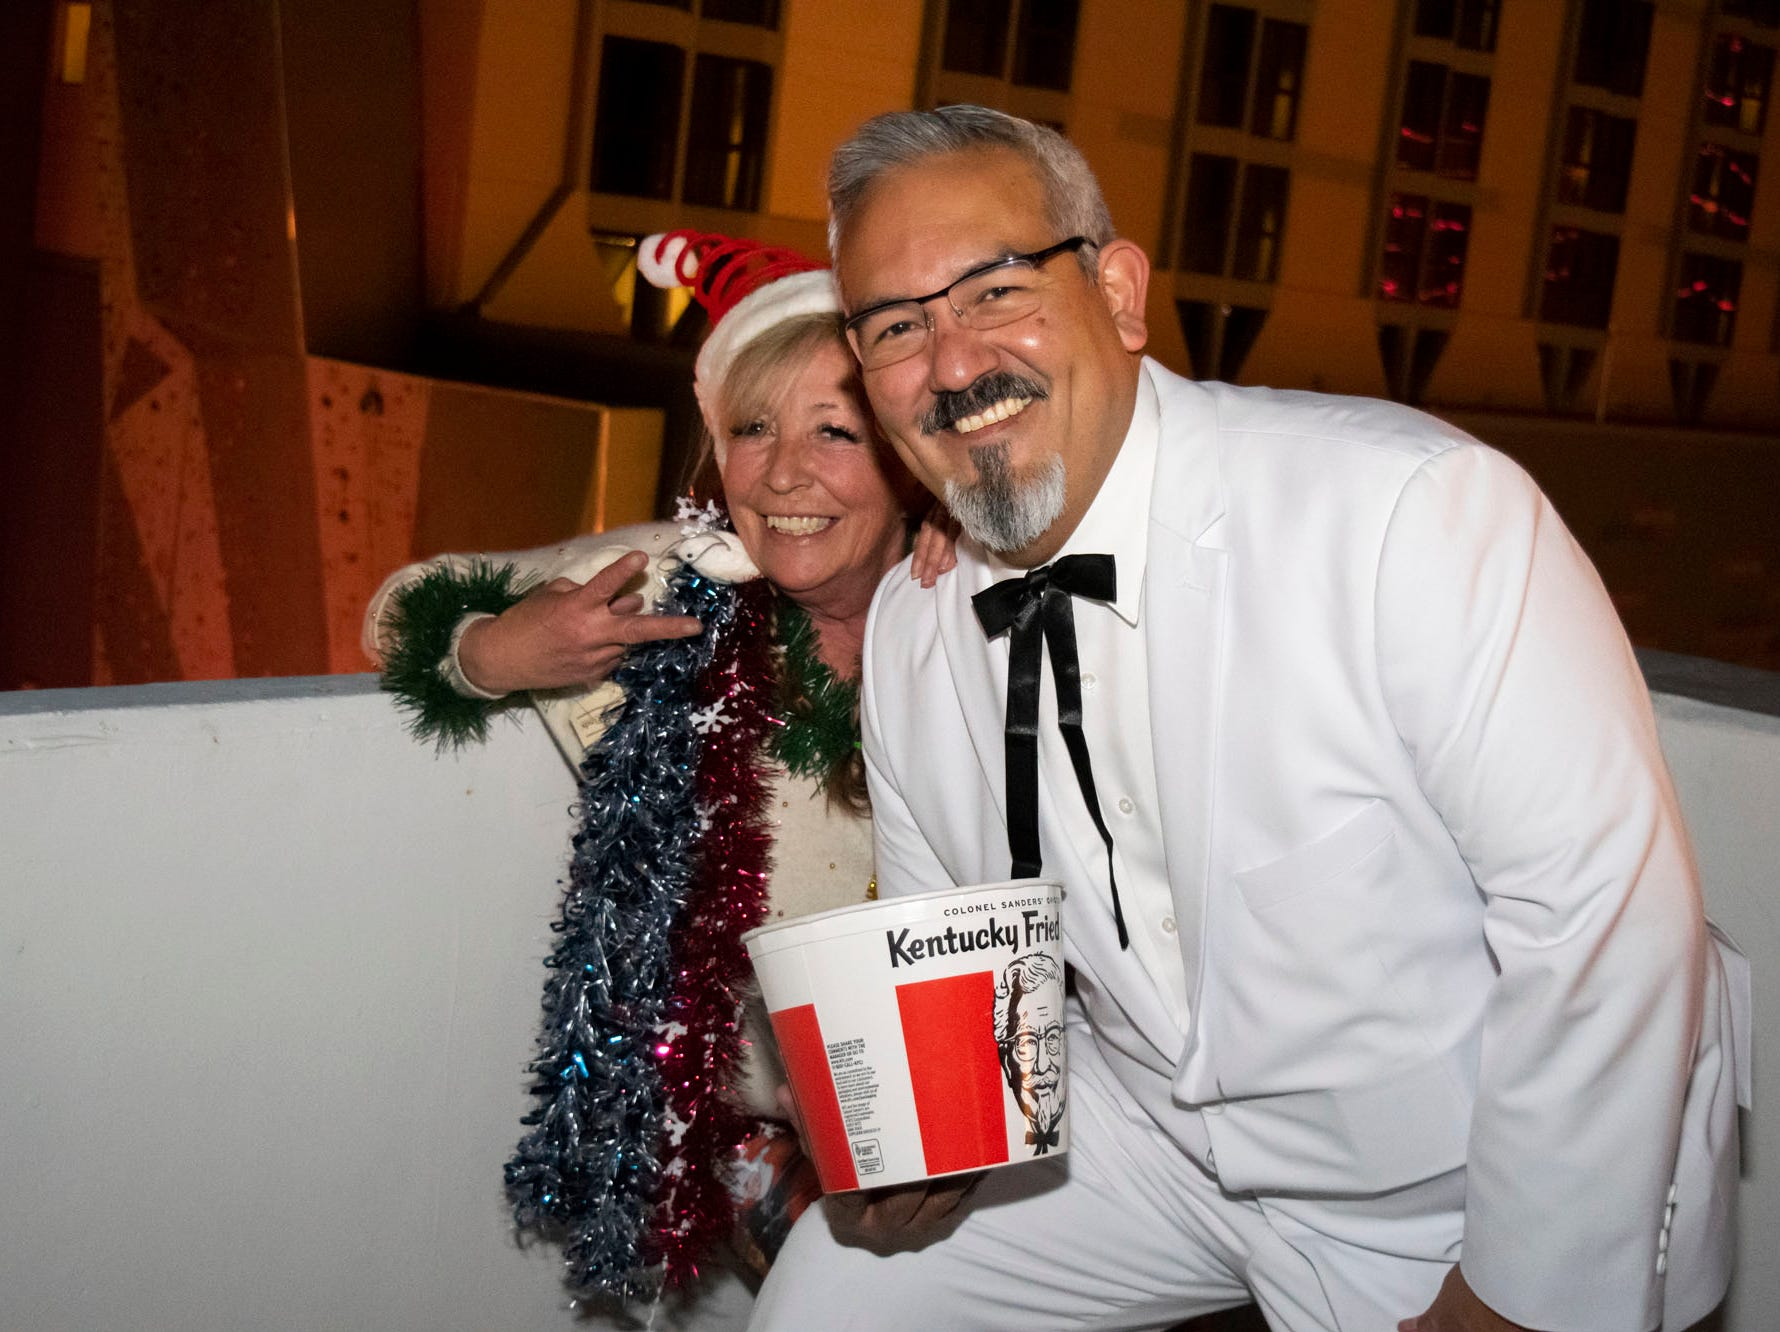 Tom and Carolyn Madrigal get merry at the Reno Santa Pub Crawl on Saturday, Dec. 15, 2018.